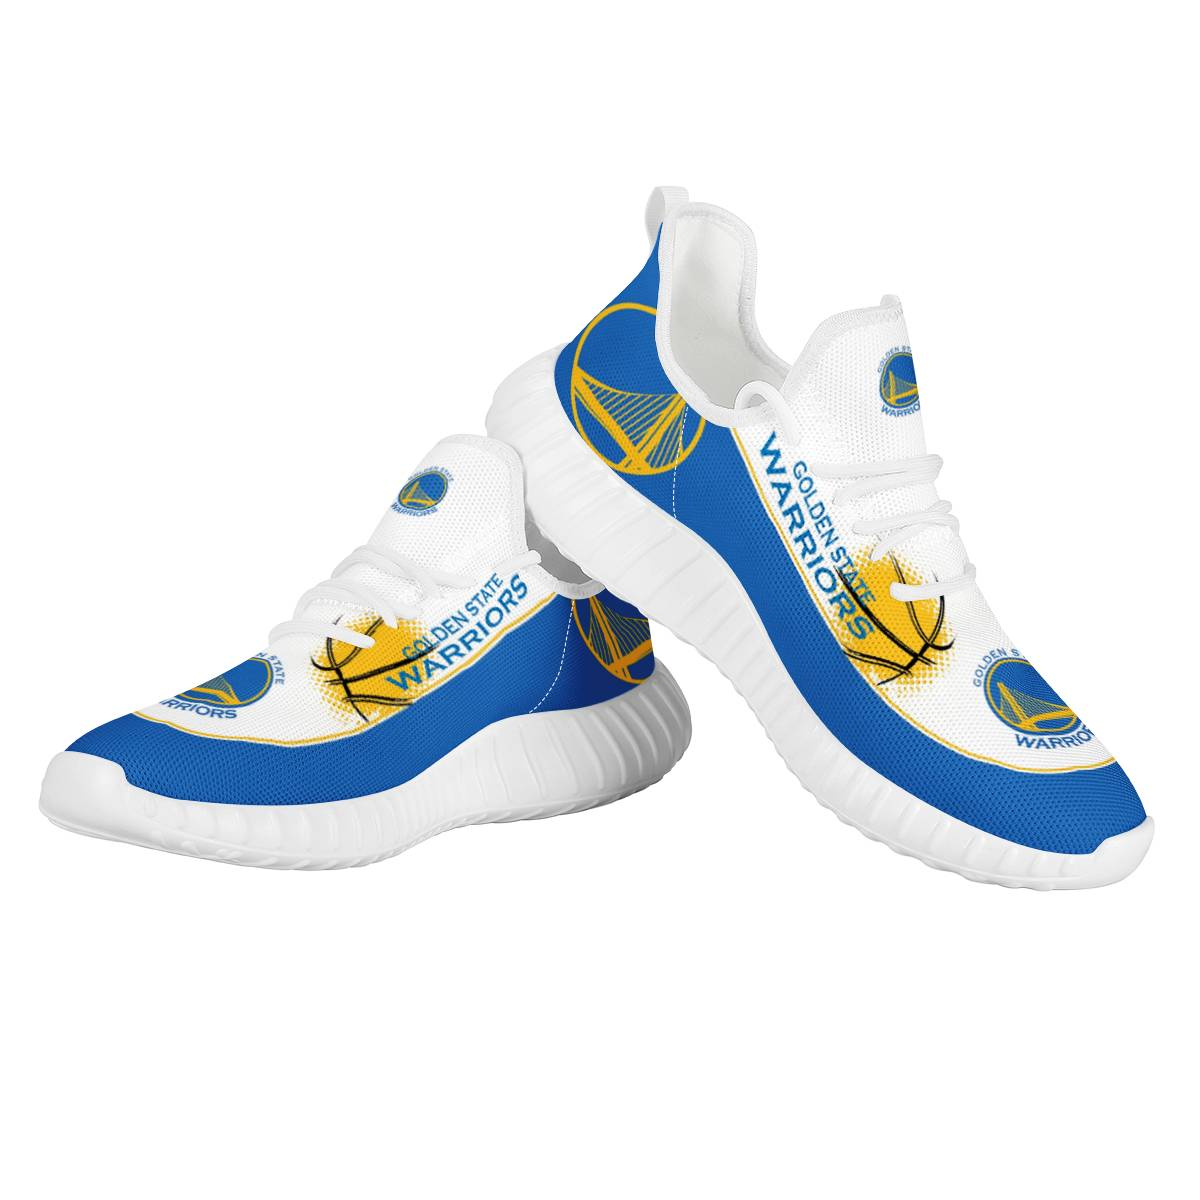 Men's Golden State Warriors Mesh Knit Sneakers/Shoes 002